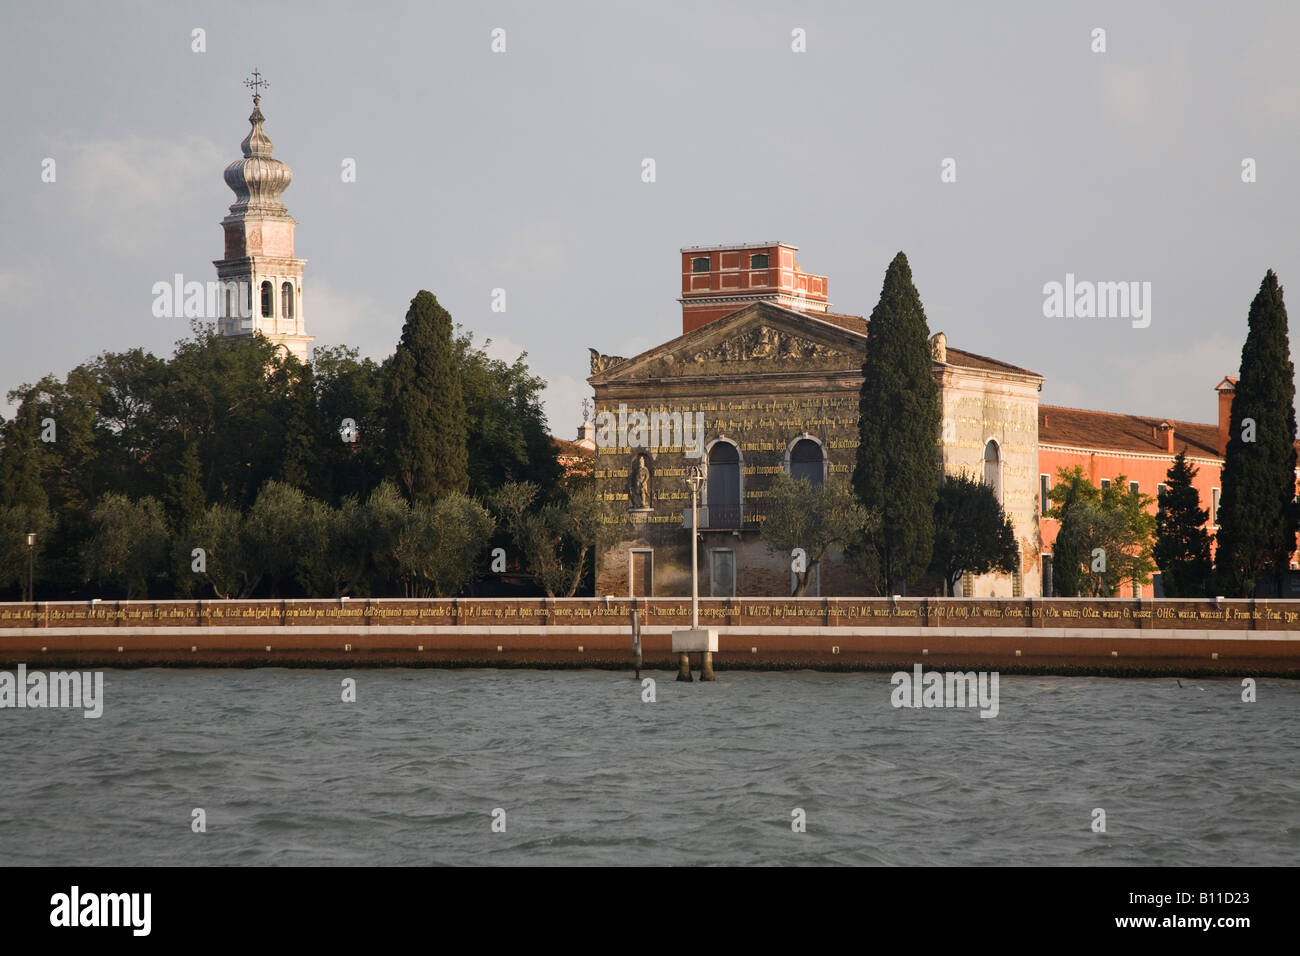 Venezia, Venezia, Insel der Armenier, Photo Stock